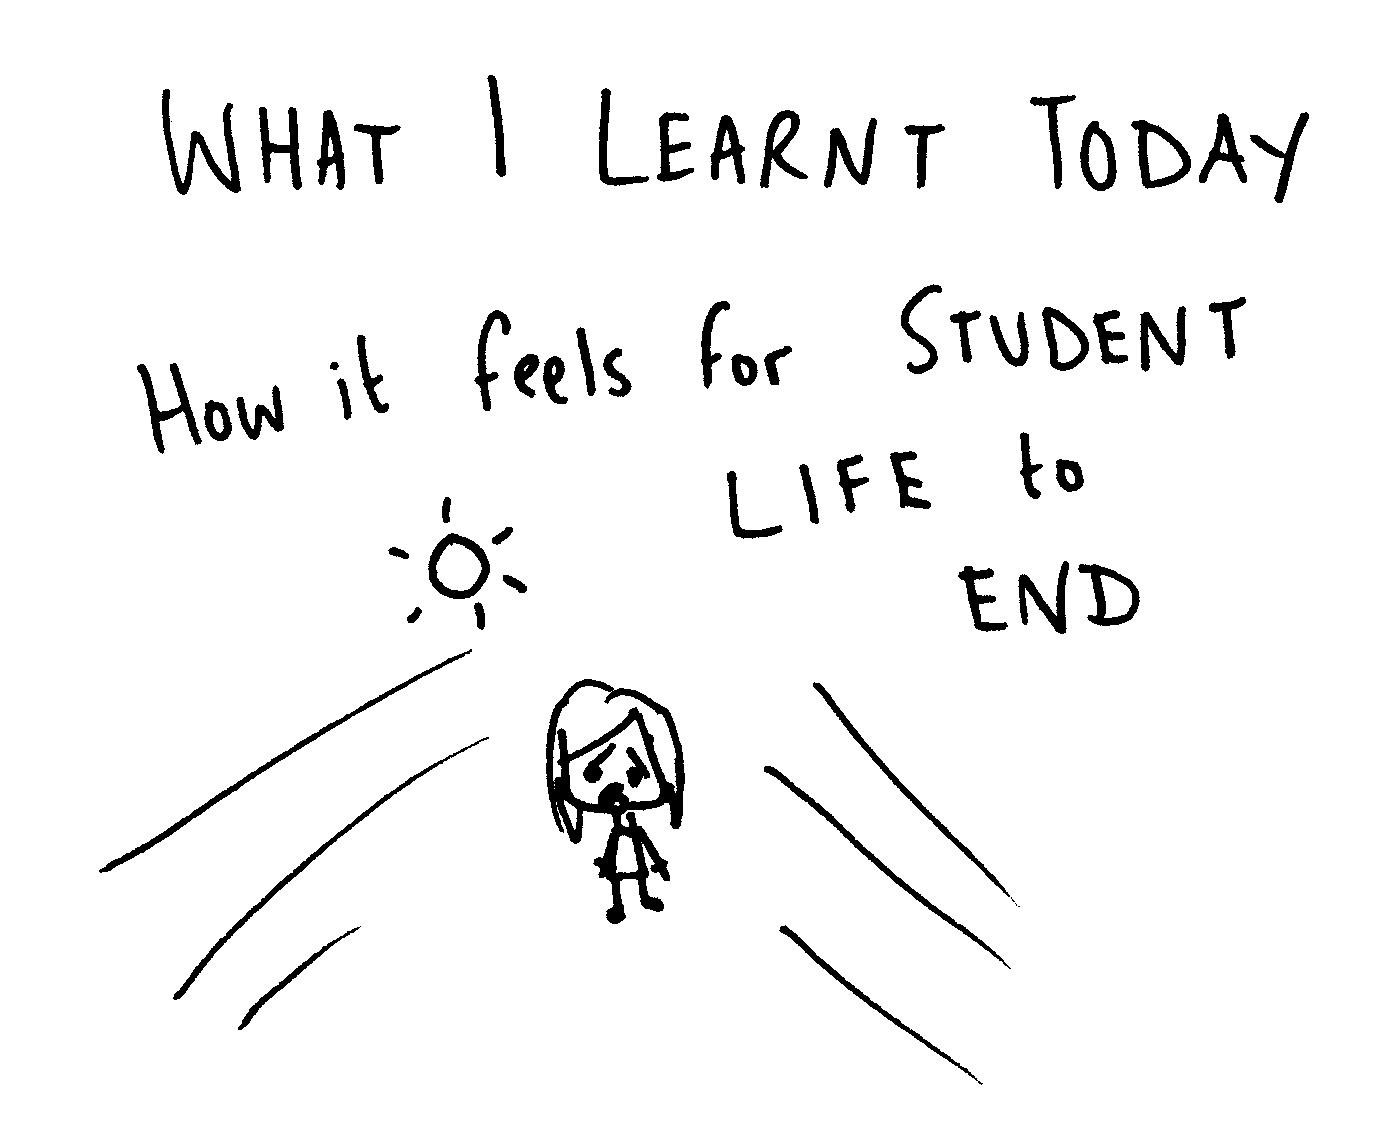 Essay on life of a student